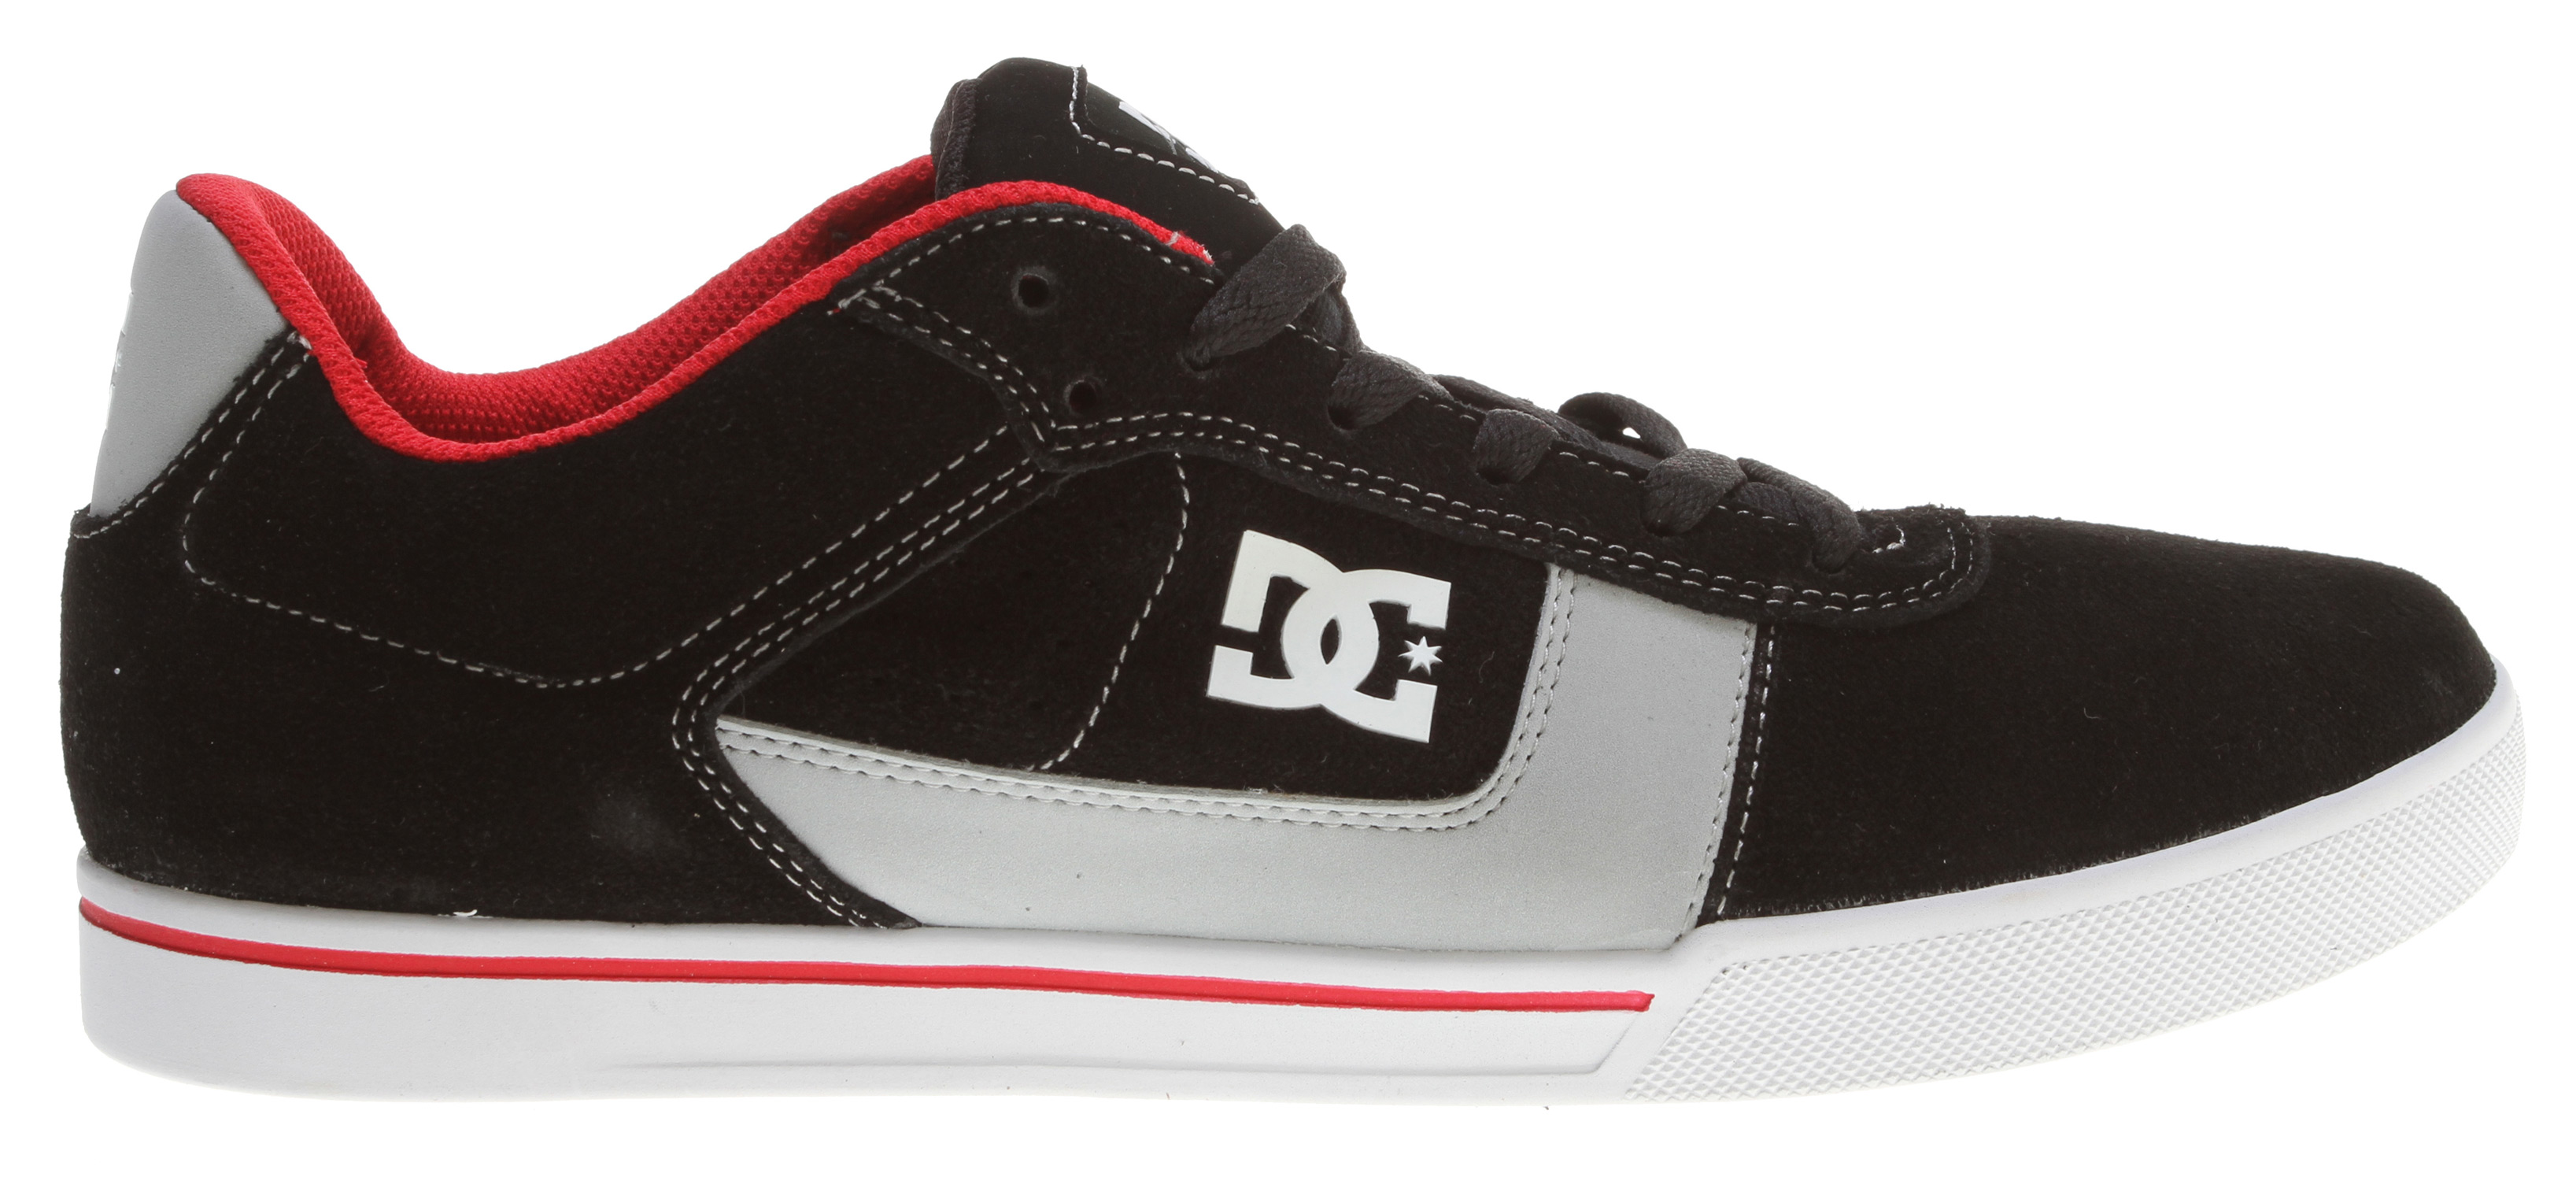 "Skateboard Designed by Chris ColeKey Features of the DC Cole Pro Skate Shoes: Designed By Chris Cole Classic Skate Style Suede Upper For Durabilty Canvas And Vent Holes For Breathability Foam Padded Tongue And Collar For Comfort And Support Vulcanized Construction Abrasion-Resistant Sticky Rubber Outsole DC's Trademarked ""Pill Pattern"" Bottom. - $45.95"